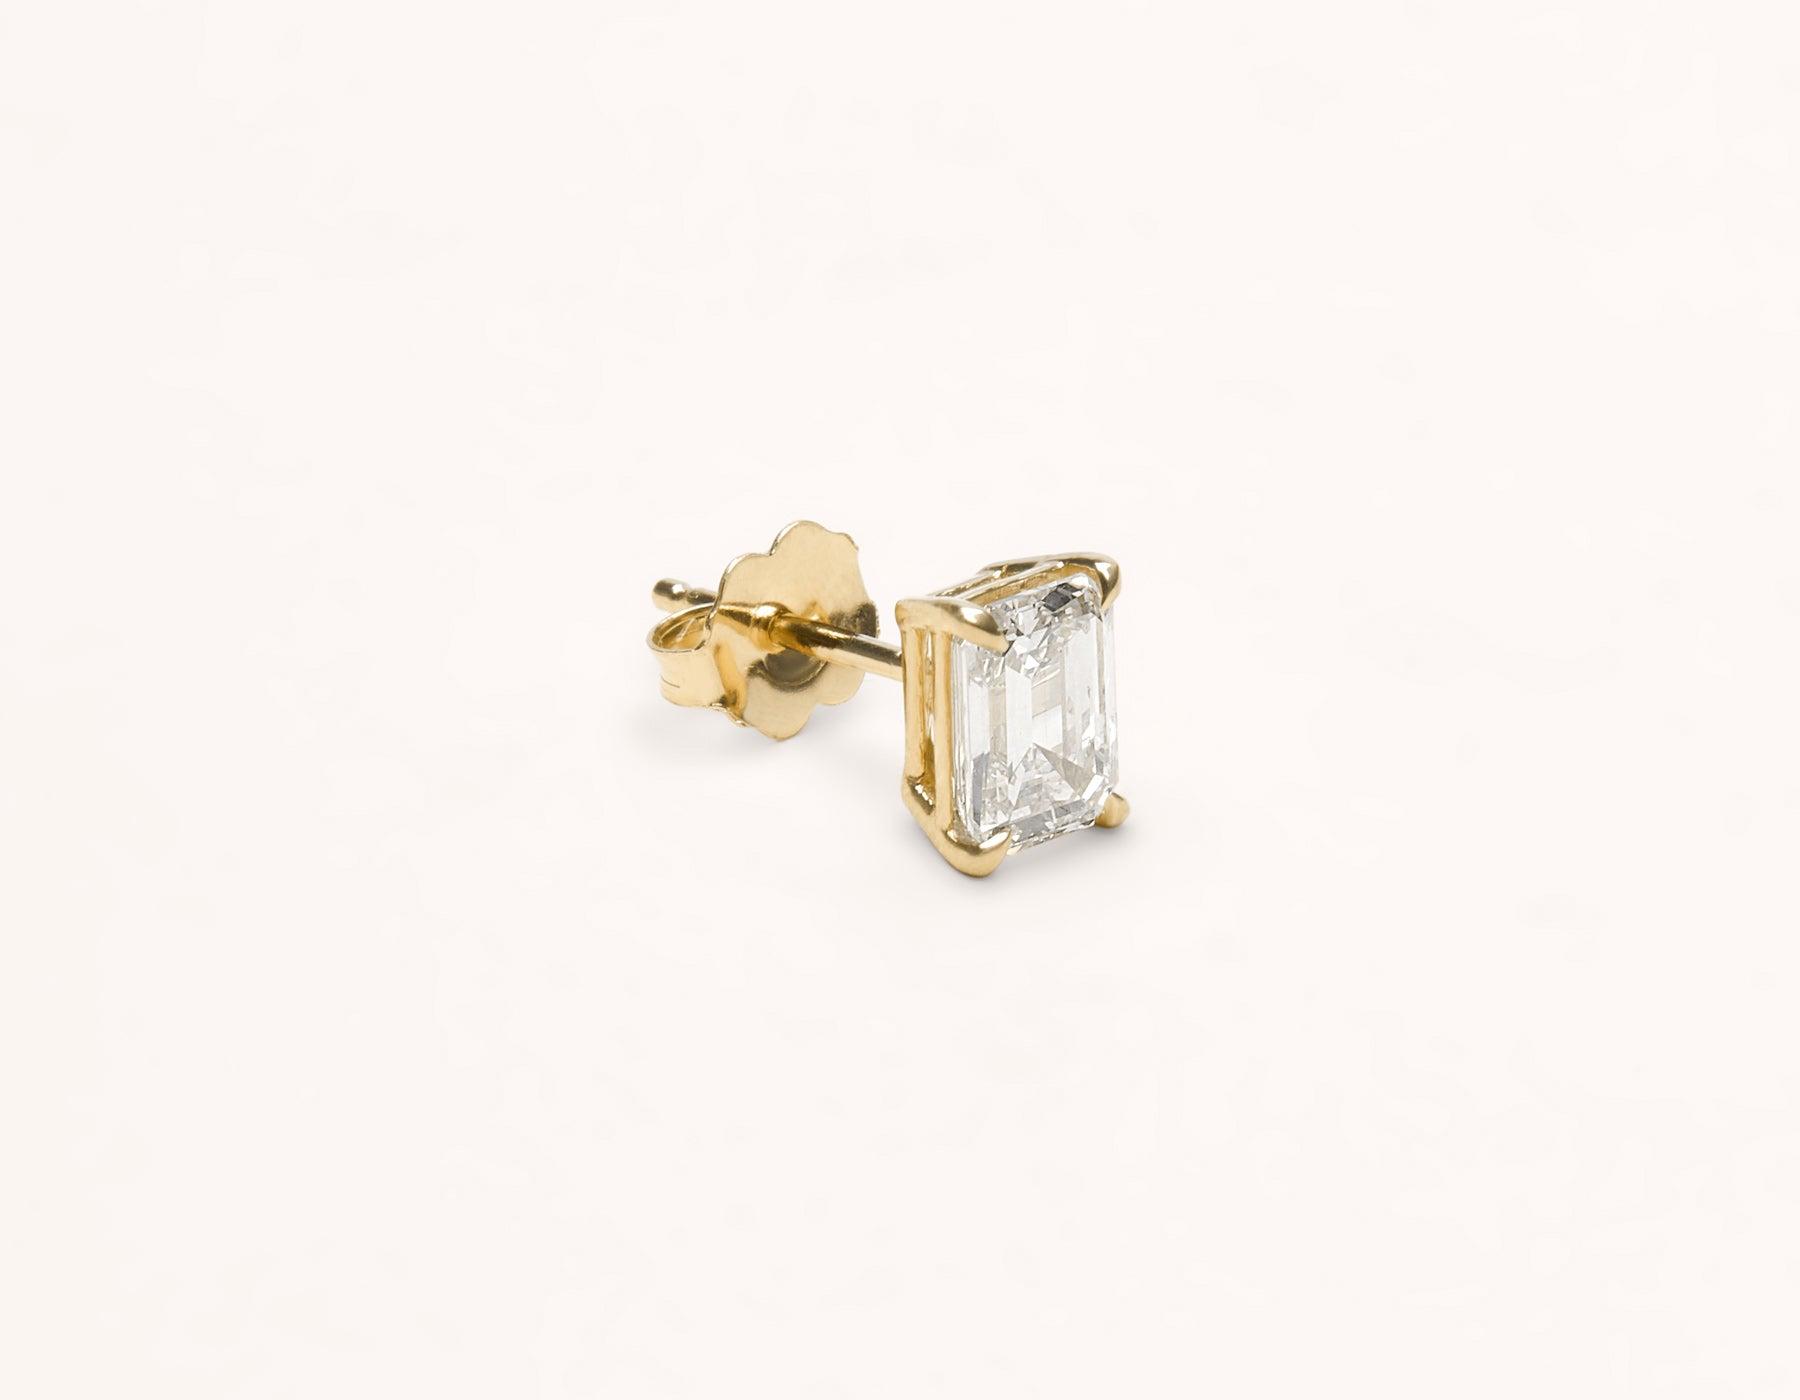 Vrai & Oro 1.0 carat Emerald Diamond stud earring 18k solid gold simple modern, 18K Yellow Gold